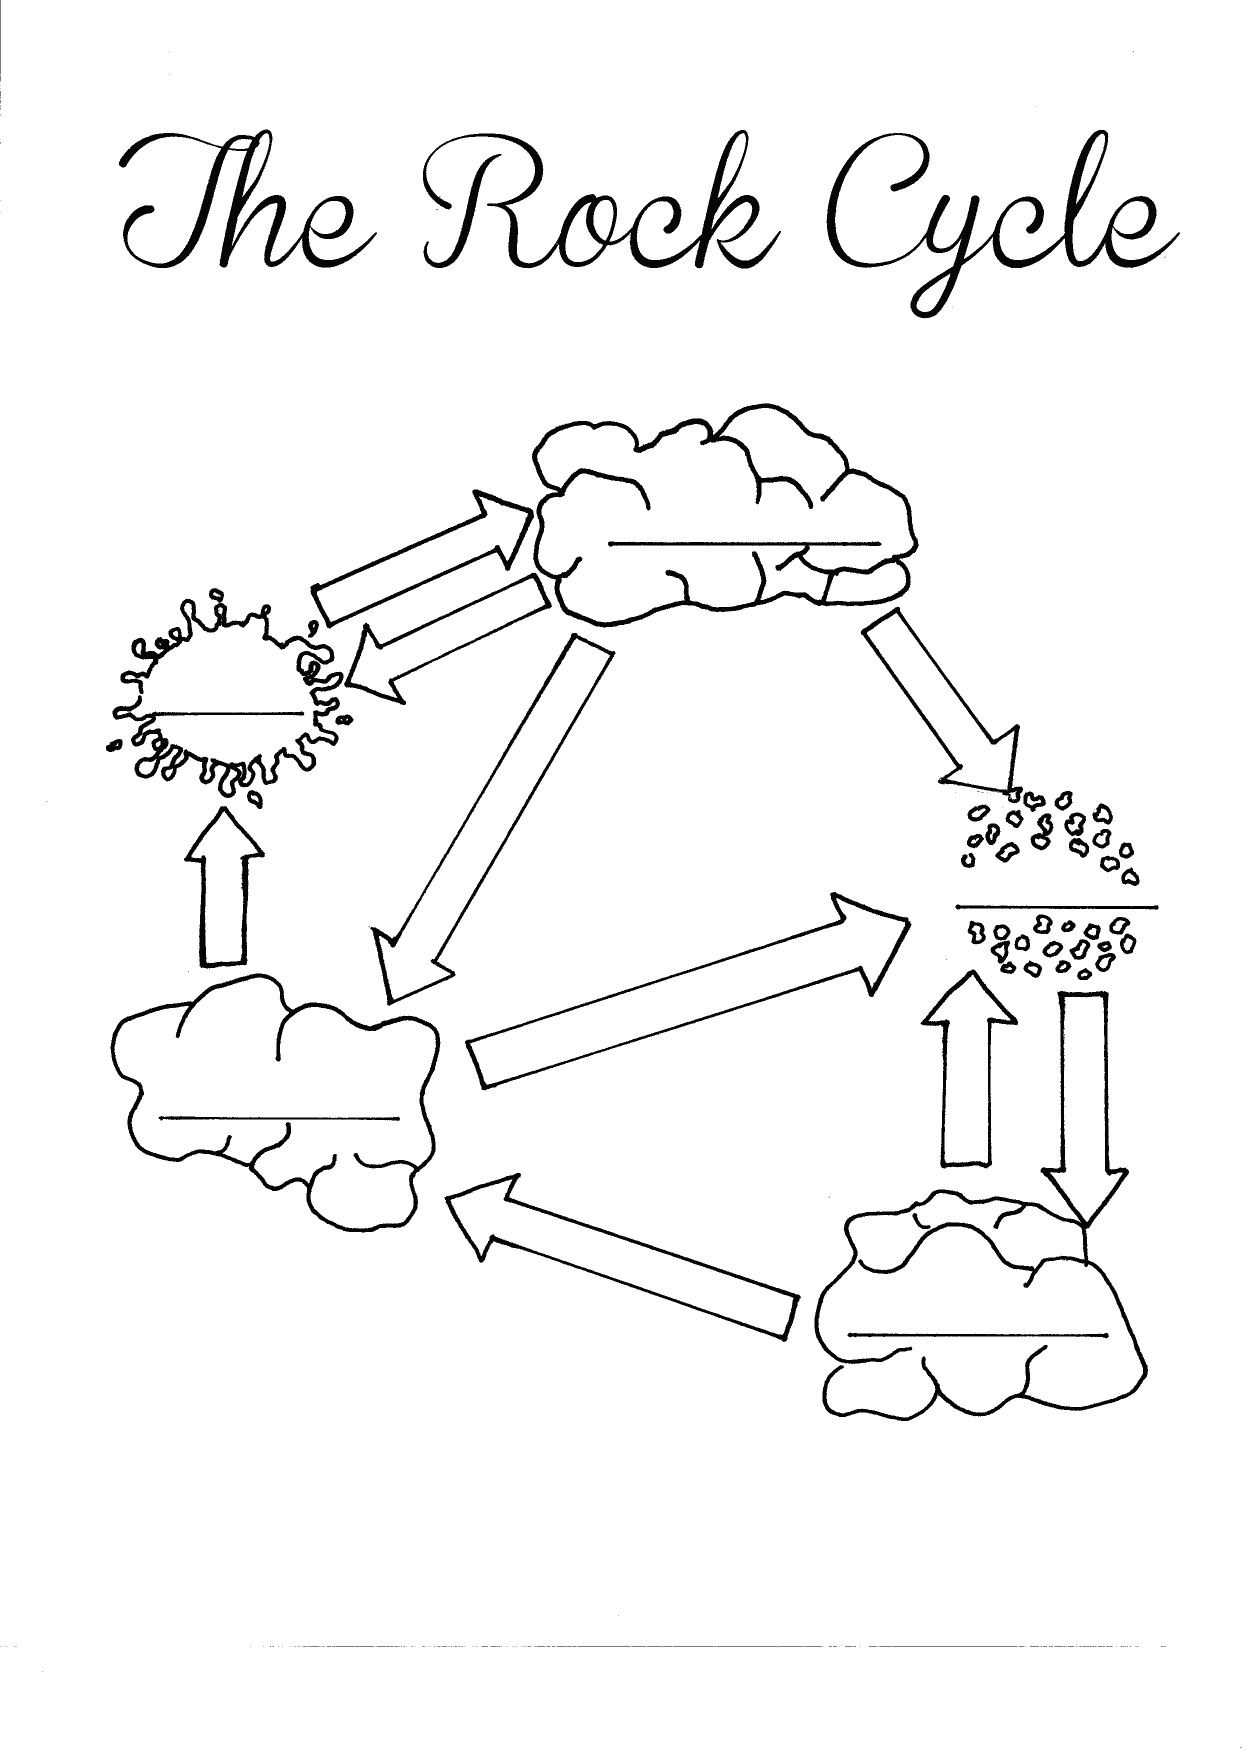 The Rock Cycle Blank Worksheet - Fill In As You Talk About Or Go | Rock Cycle Worksheets Free Printable